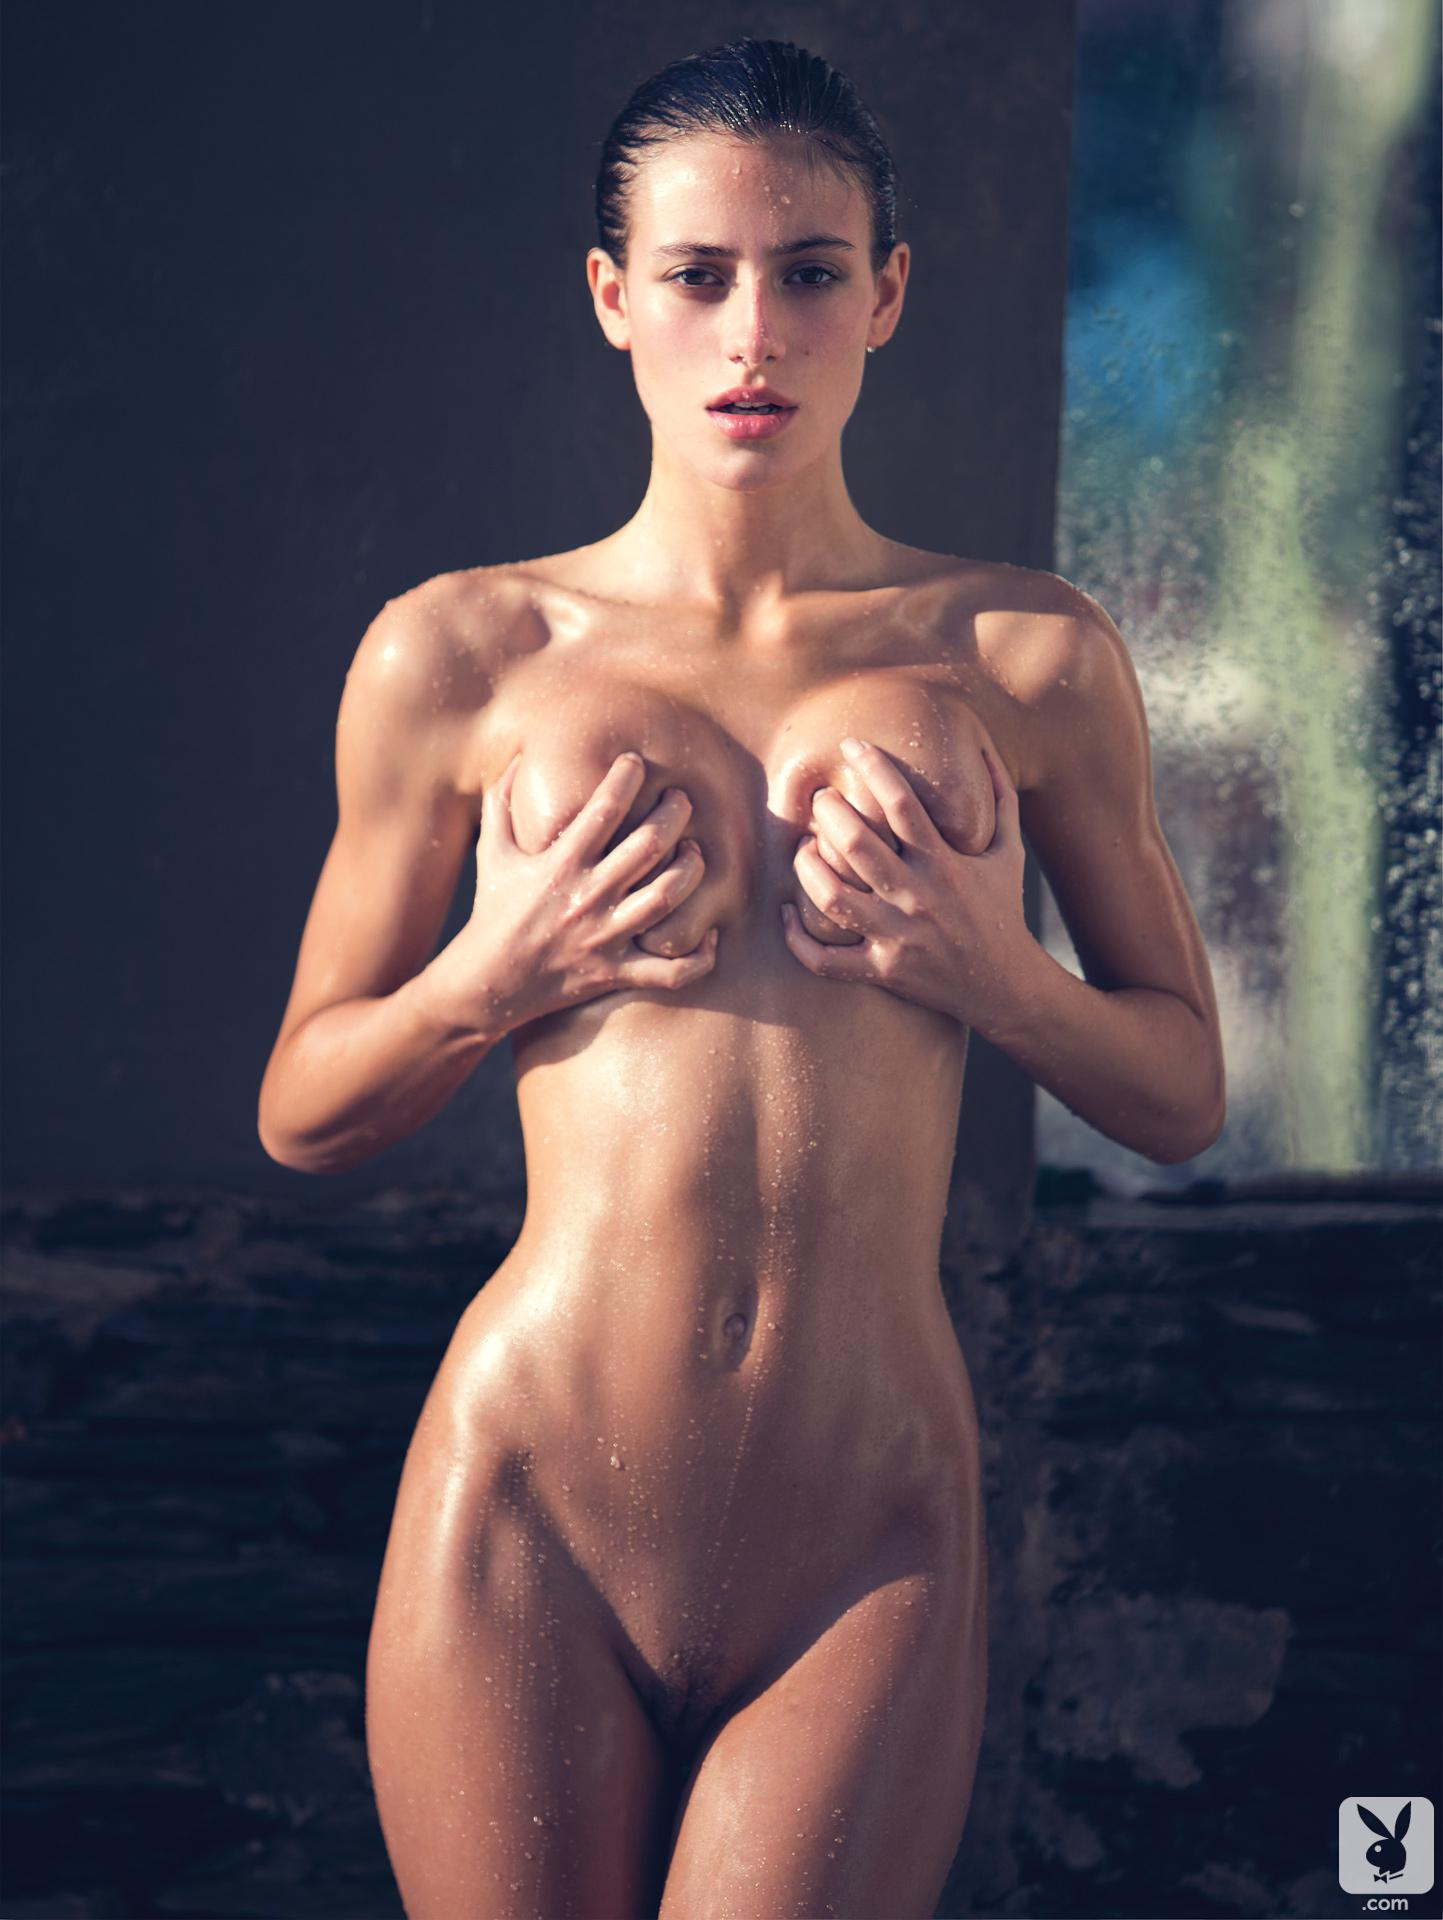 kwrde-very-hot-fit-girls-nude-soft